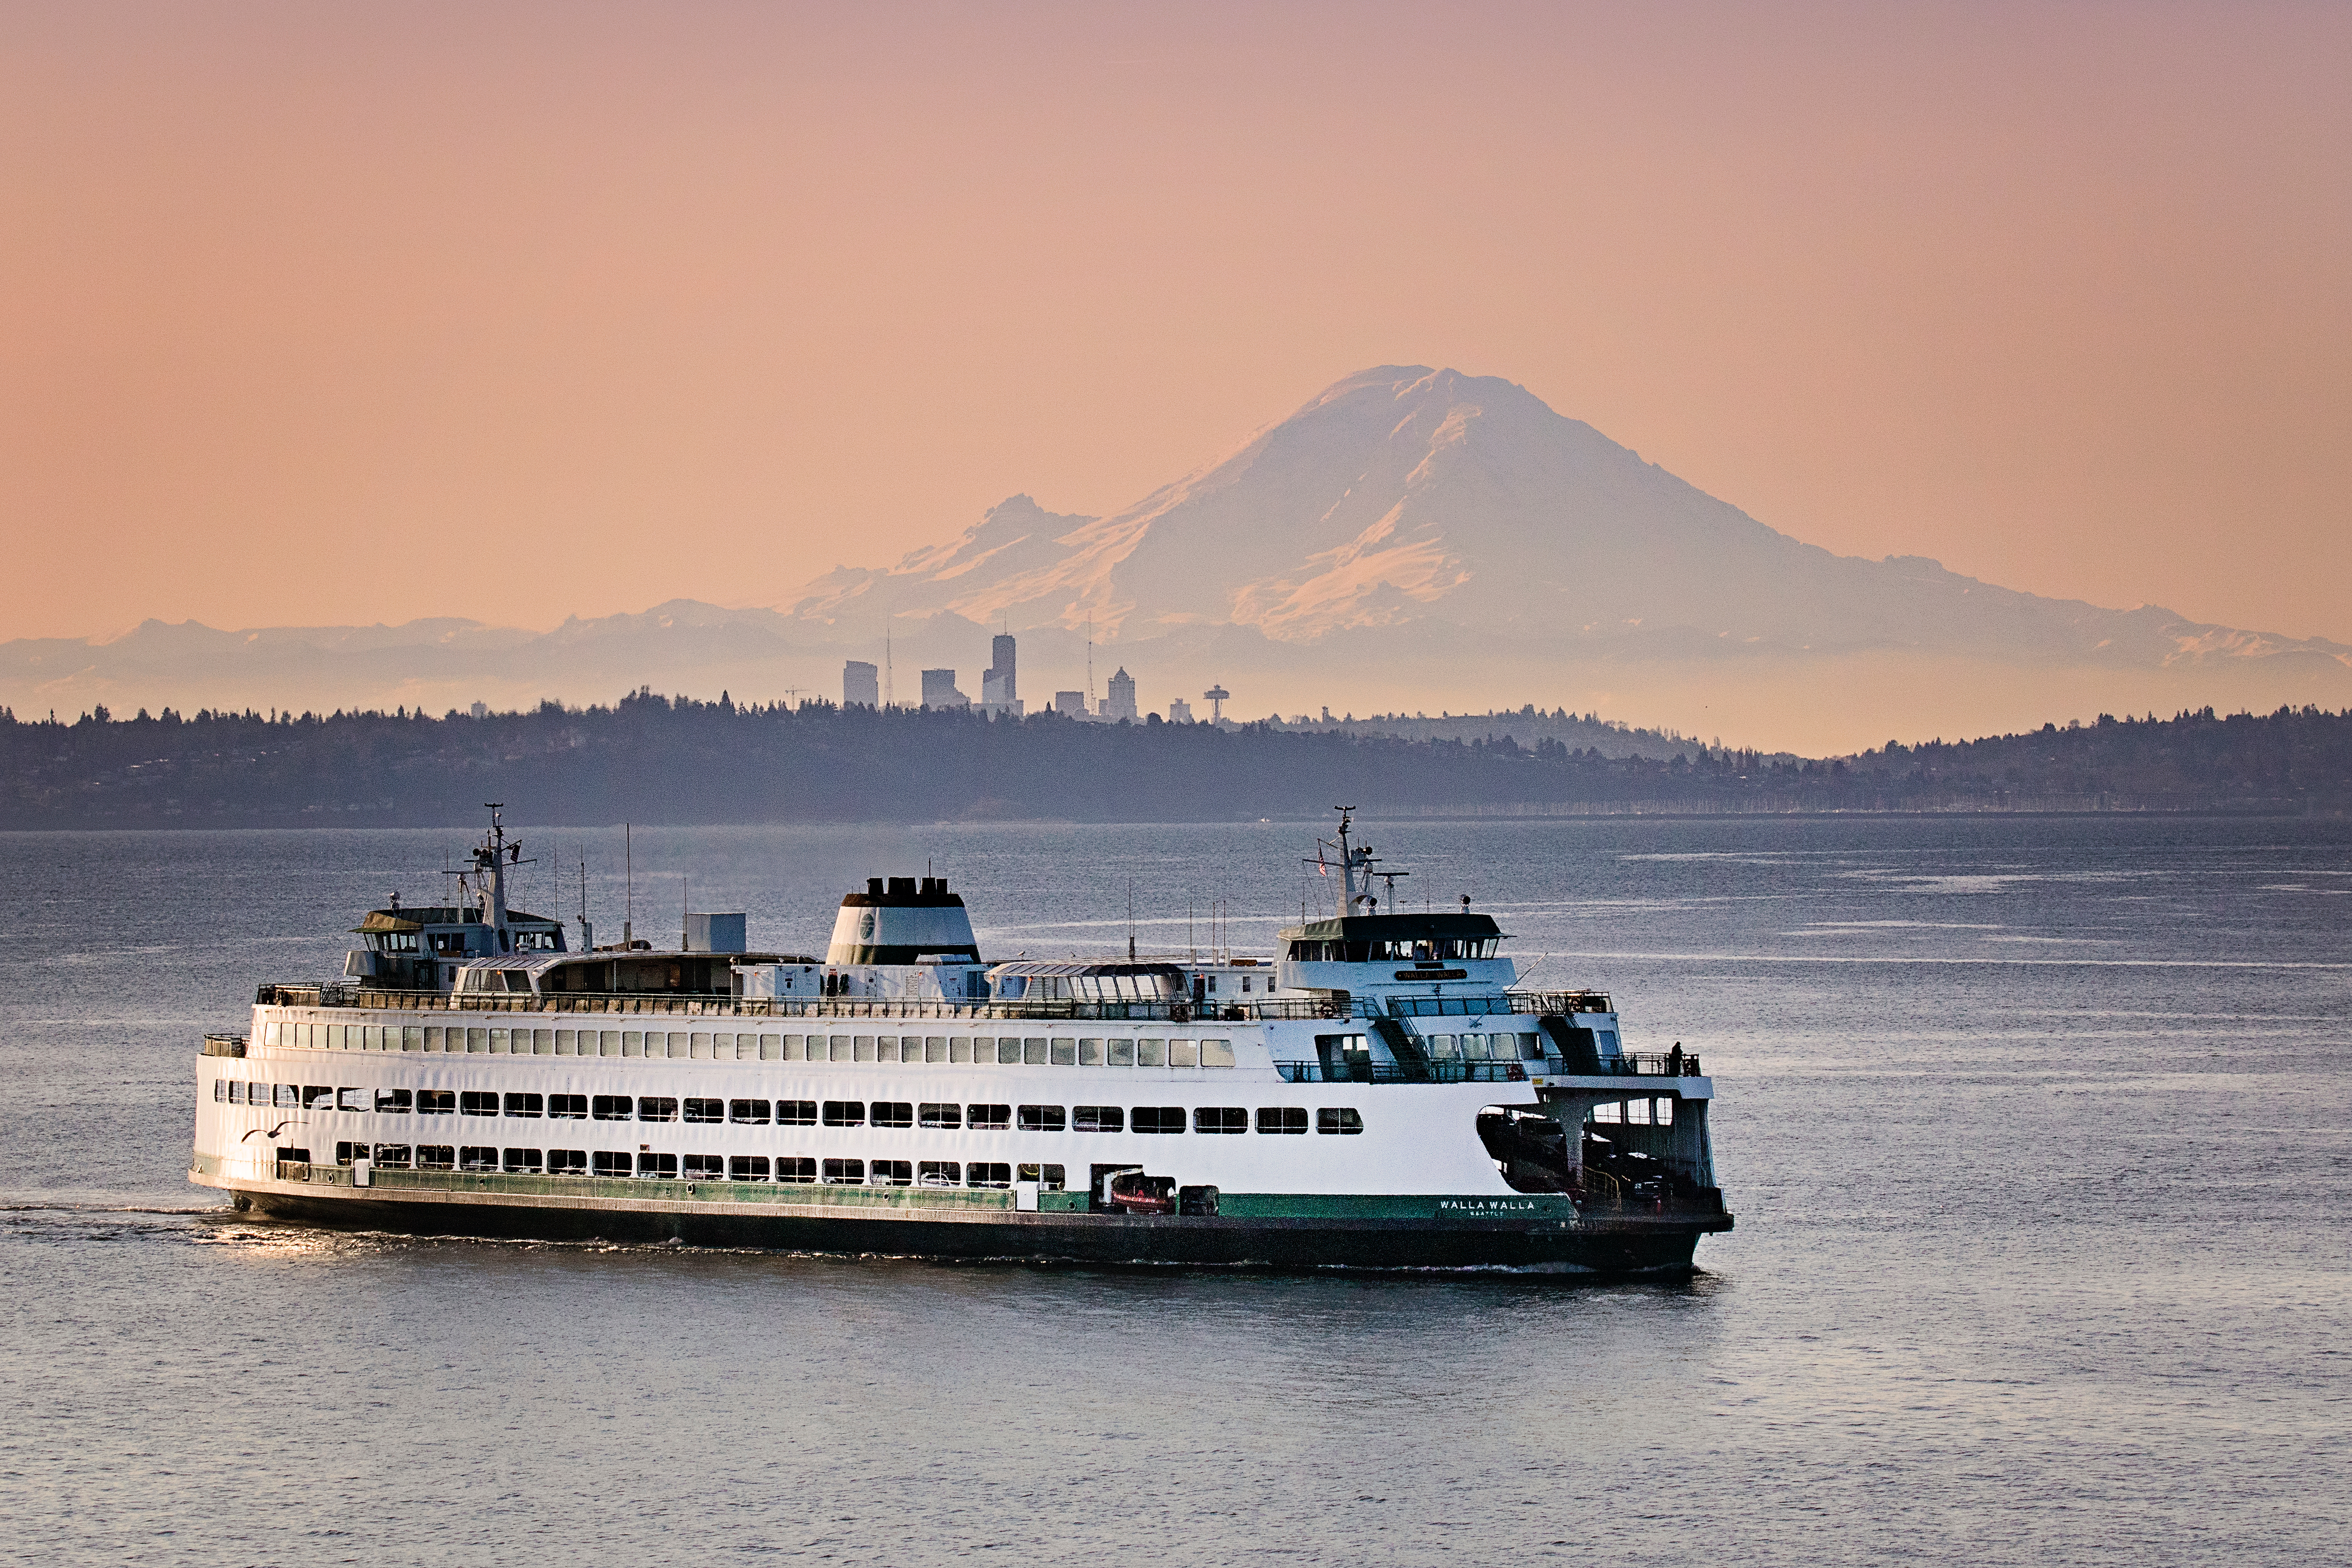 A large white ferry with green trim on calm waters. There's a large mountain in the background and silhouettes of hills and skyscrapers.